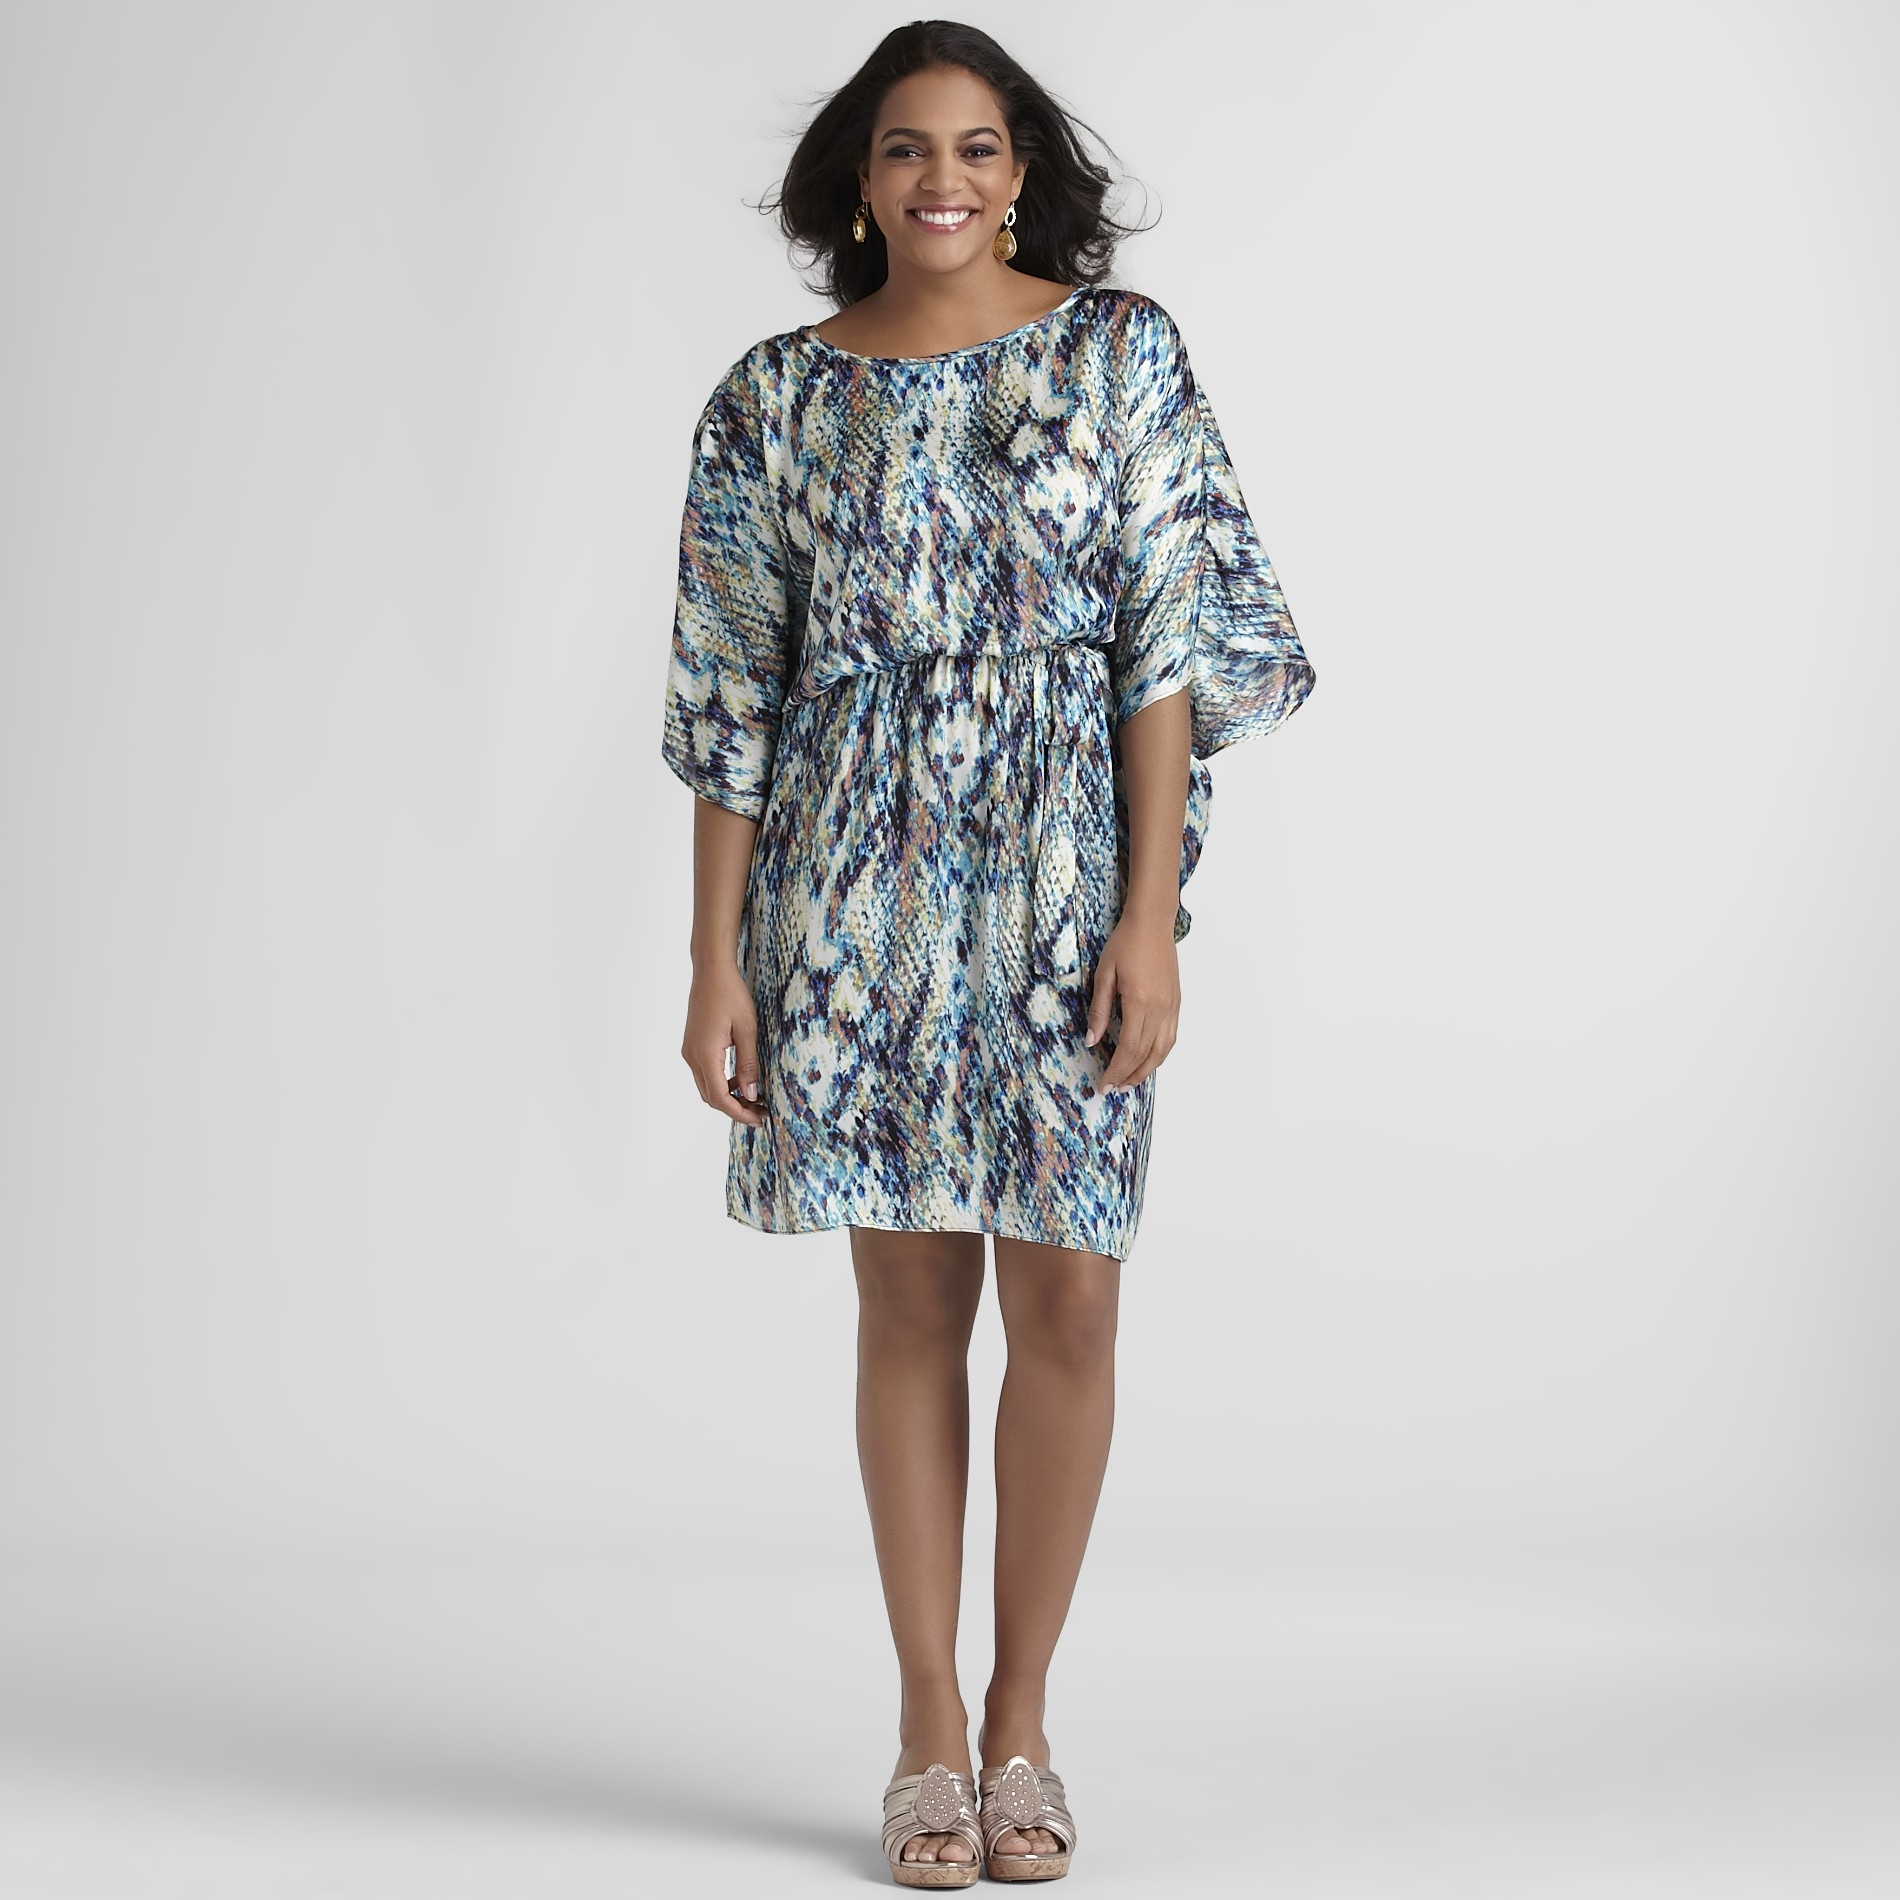 JBS Women's Plus Butterfly Dress - Snakeskin Print at Kmart.com